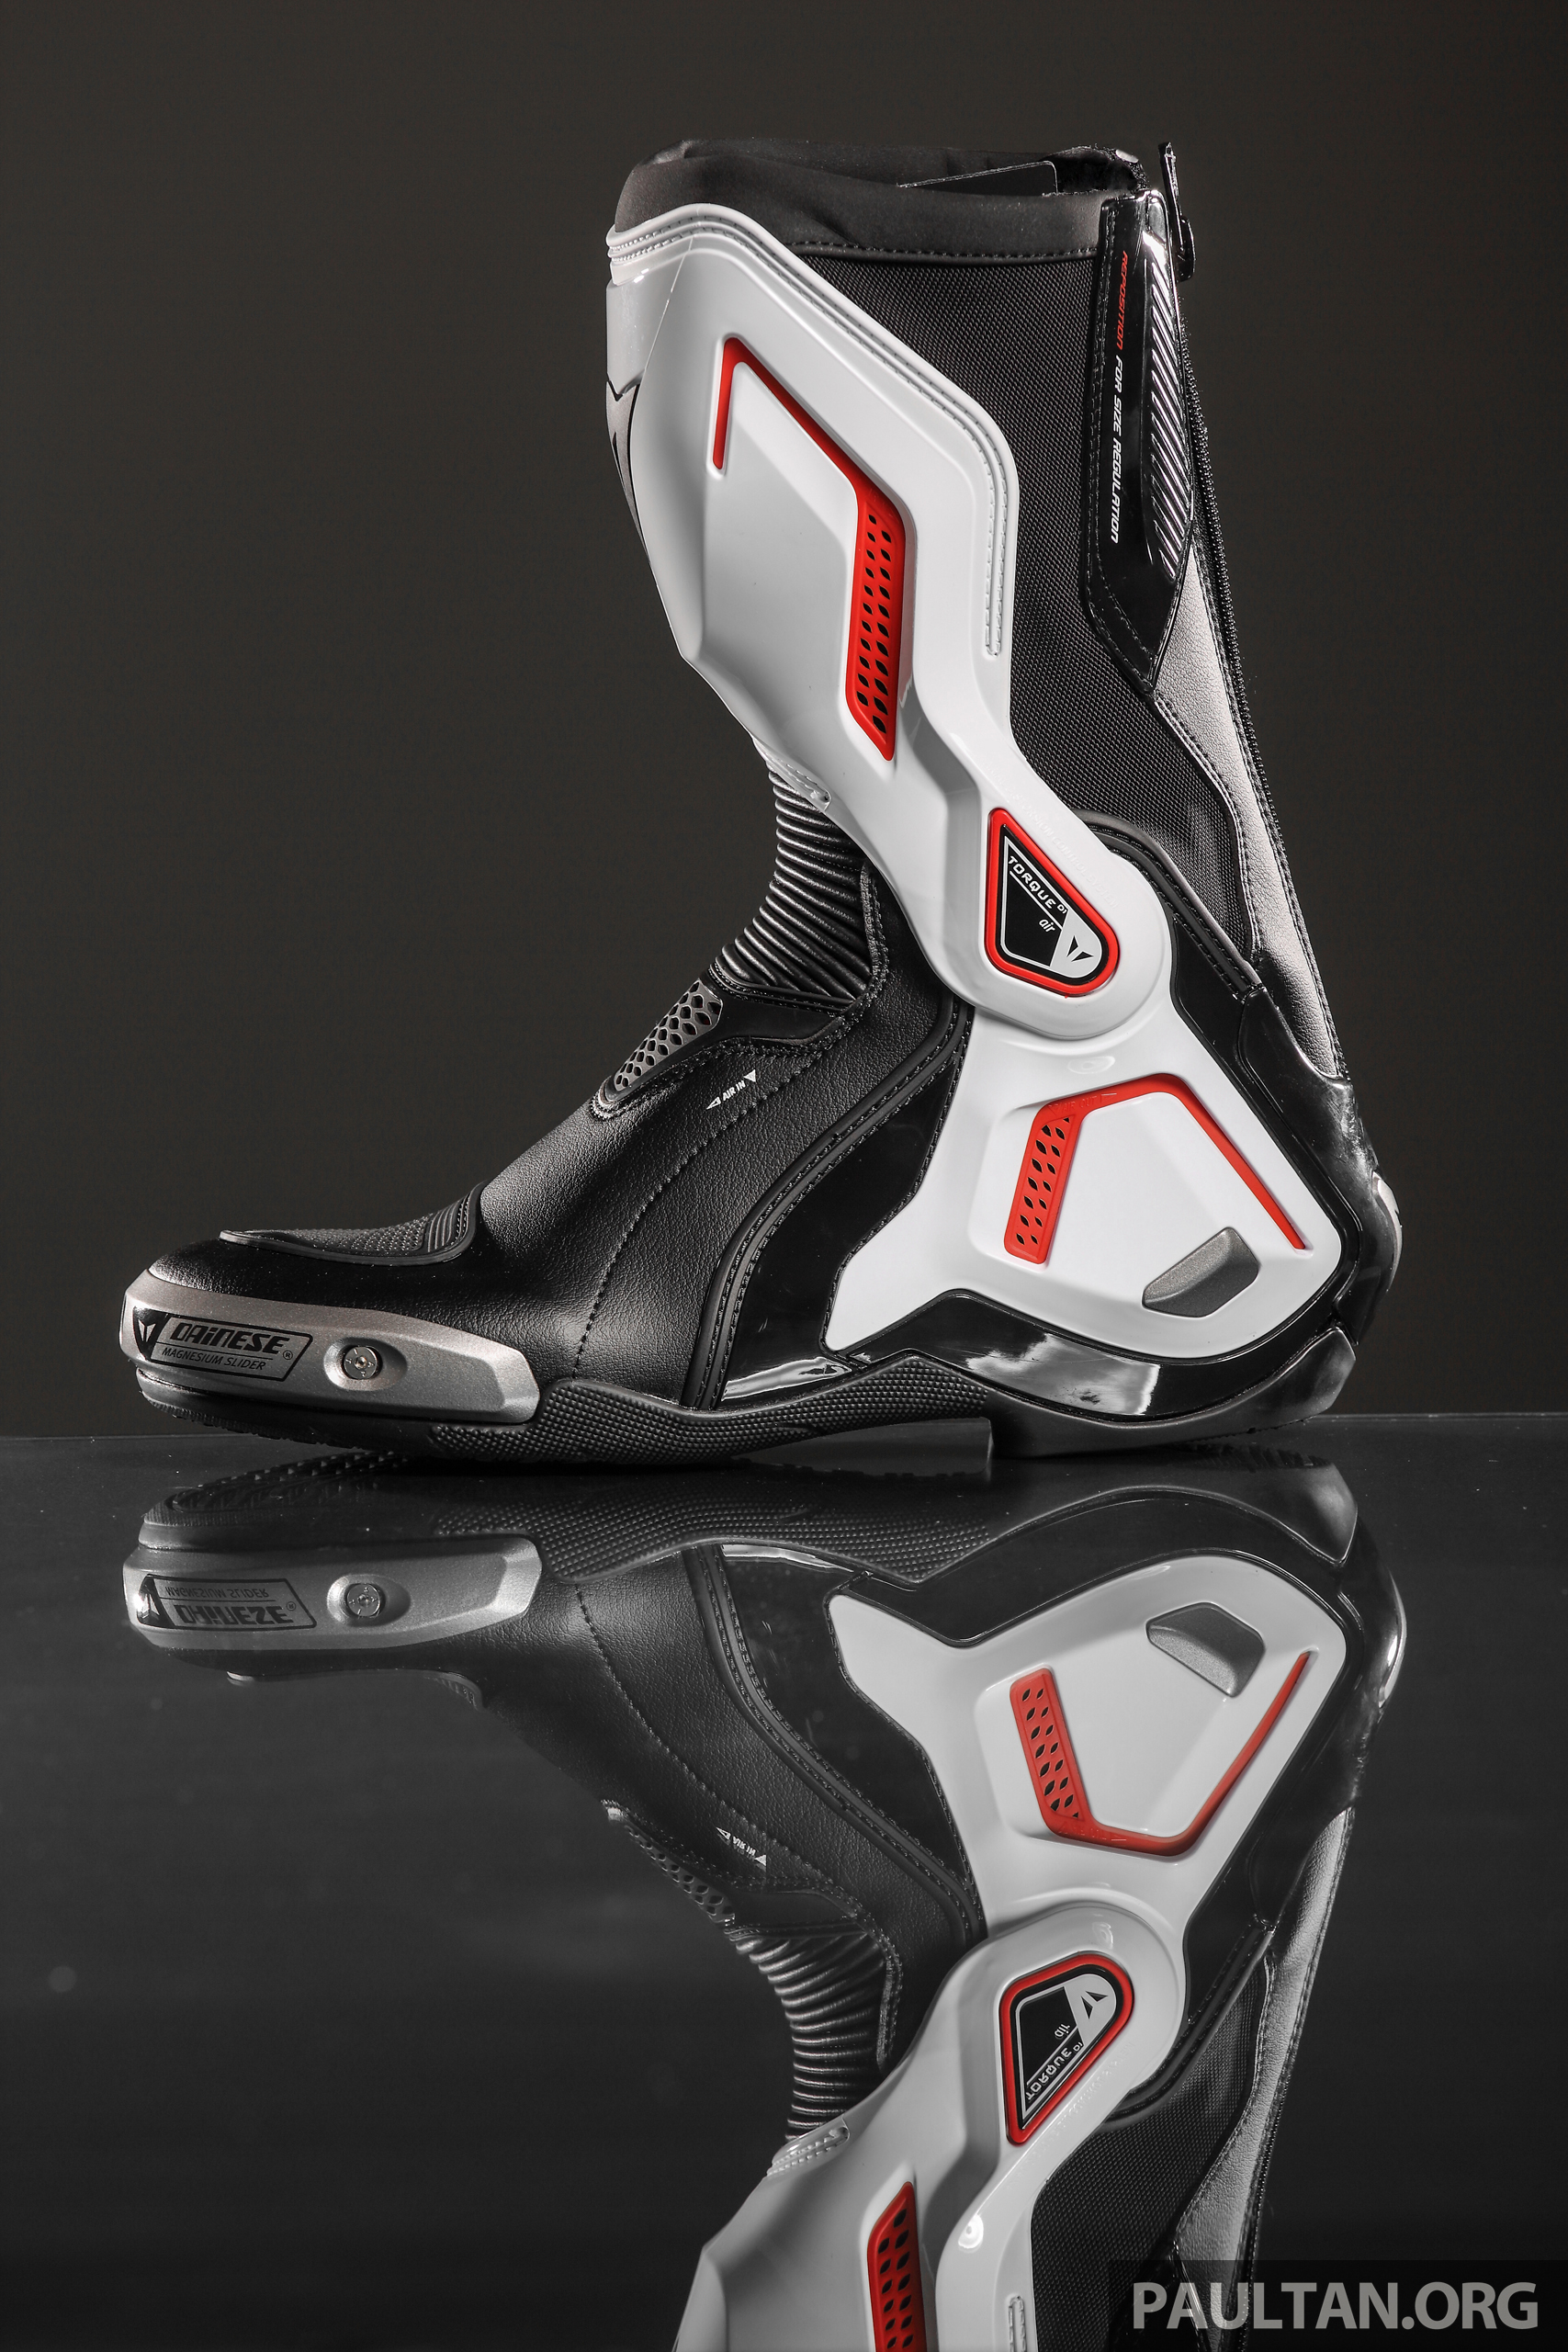 2016 dainese torque d1 out air race boots rm1 599 image. Black Bedroom Furniture Sets. Home Design Ideas